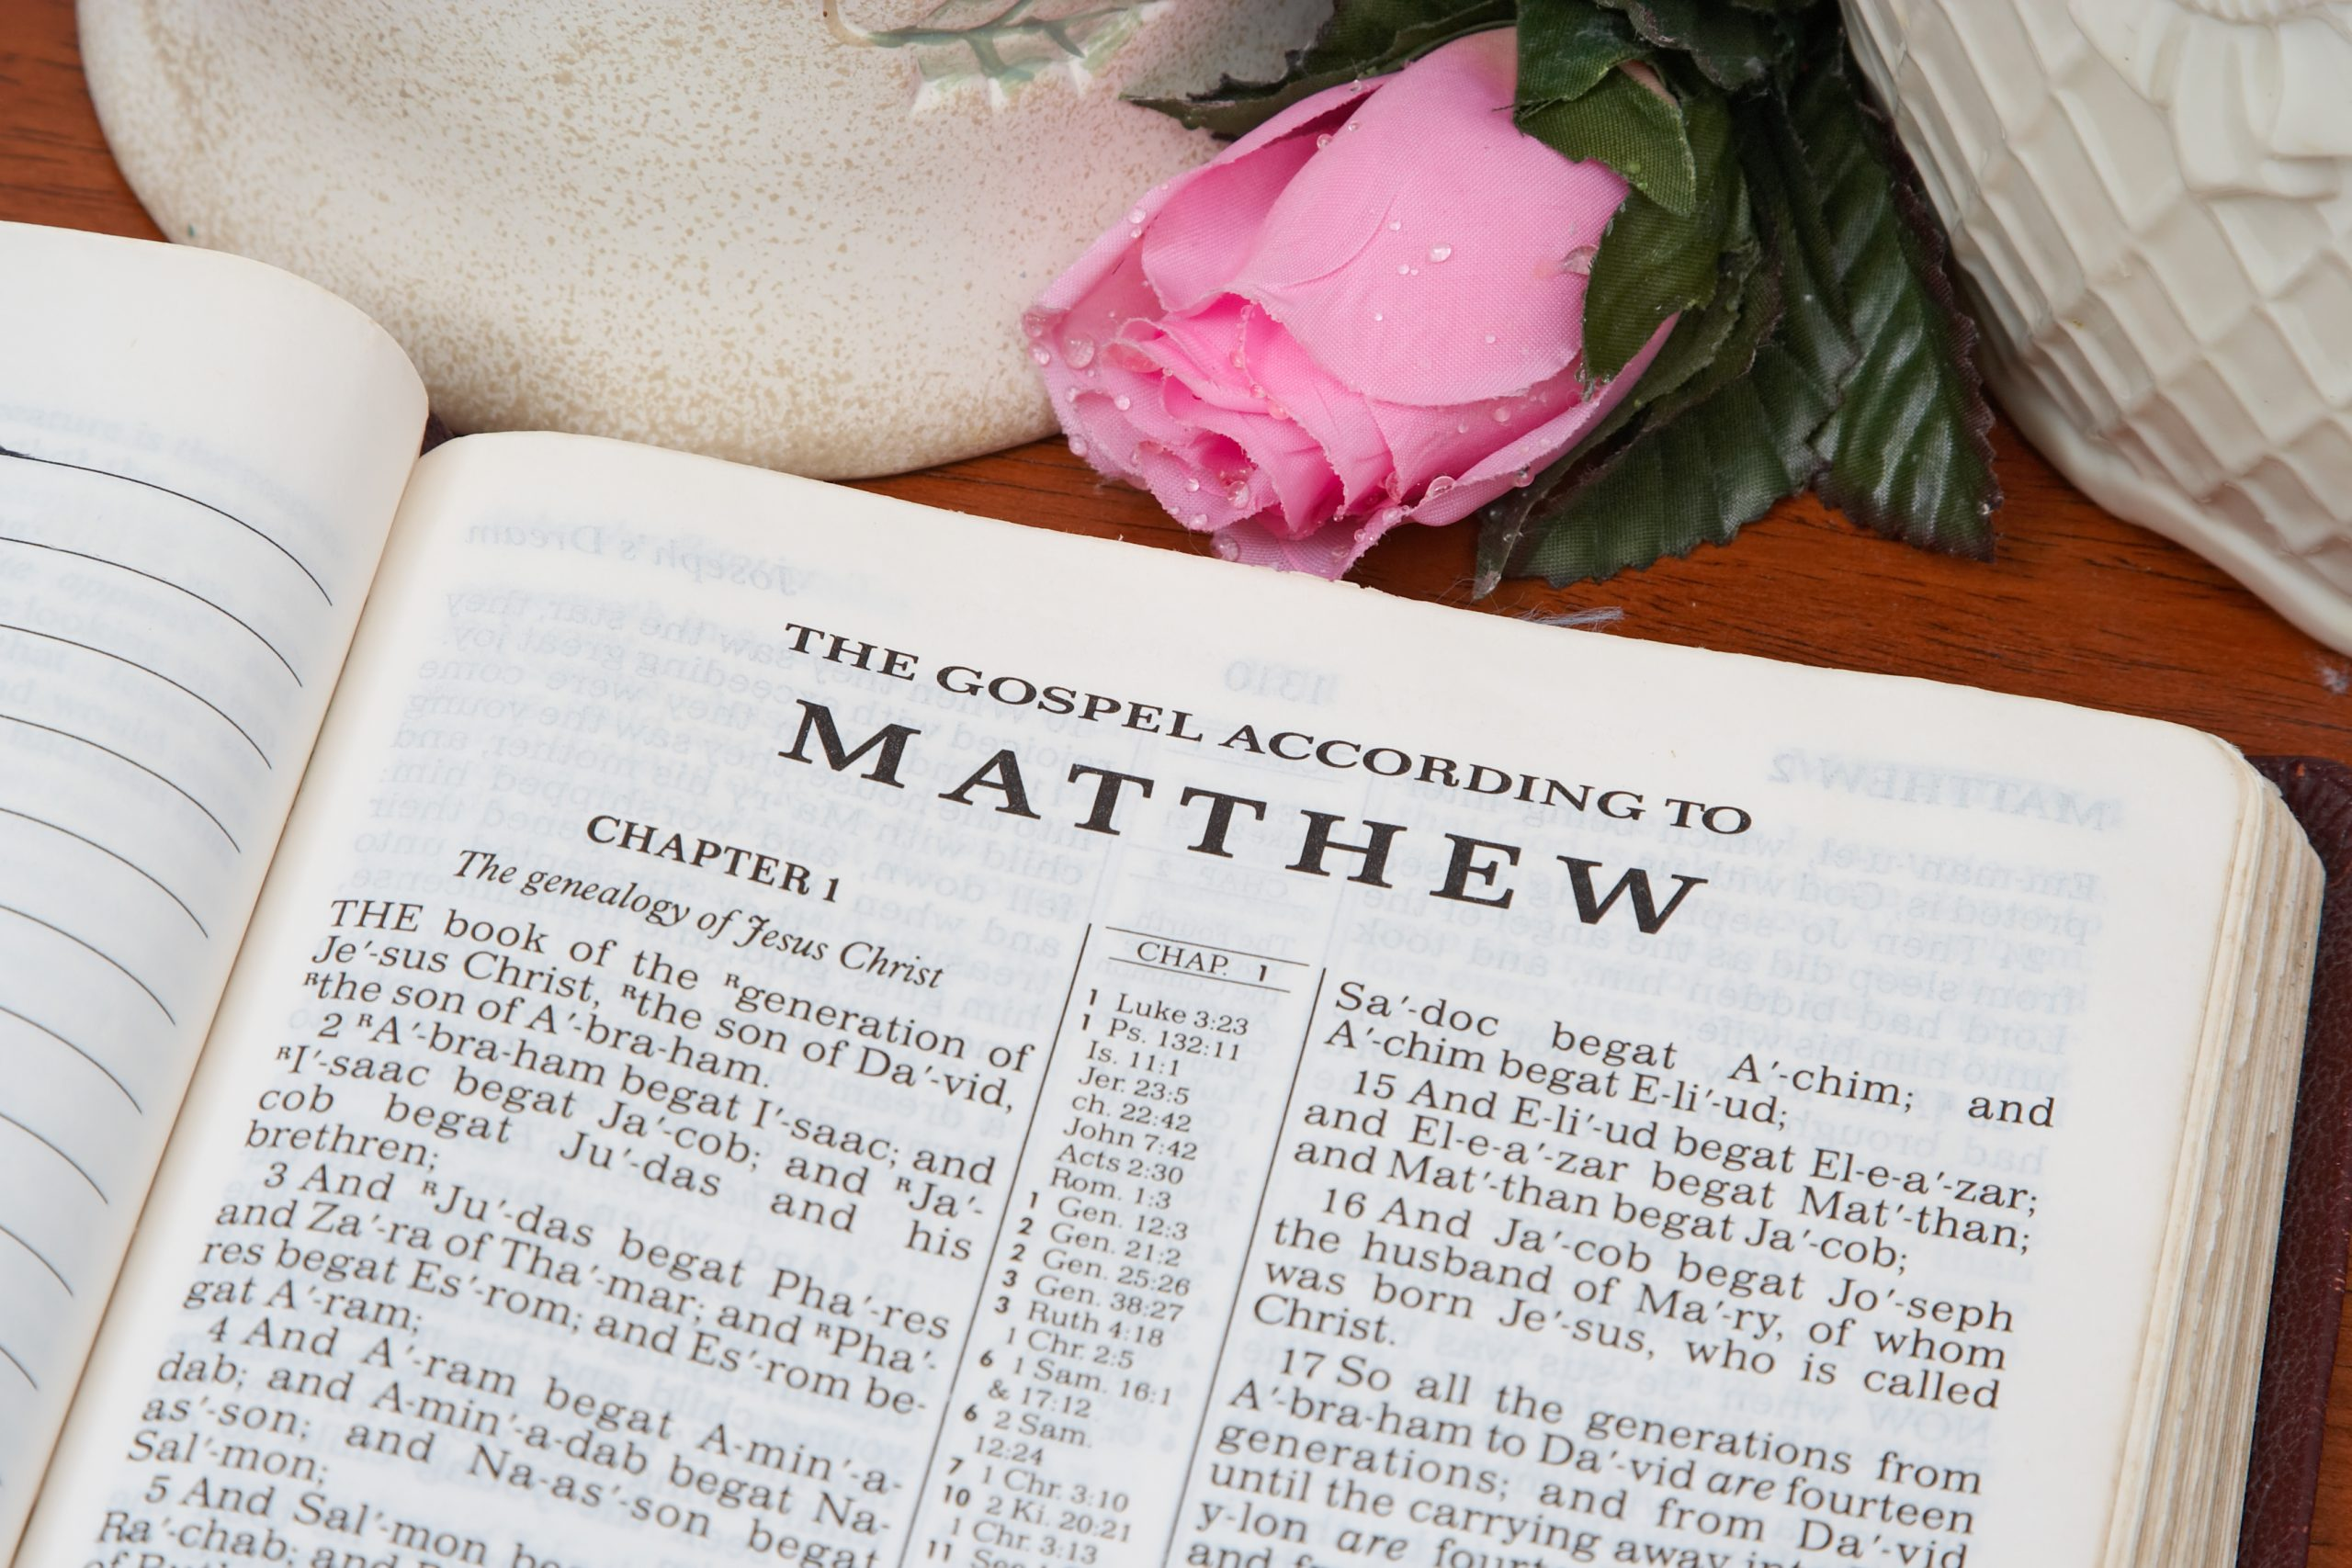 Book of Matthew in the New Testament